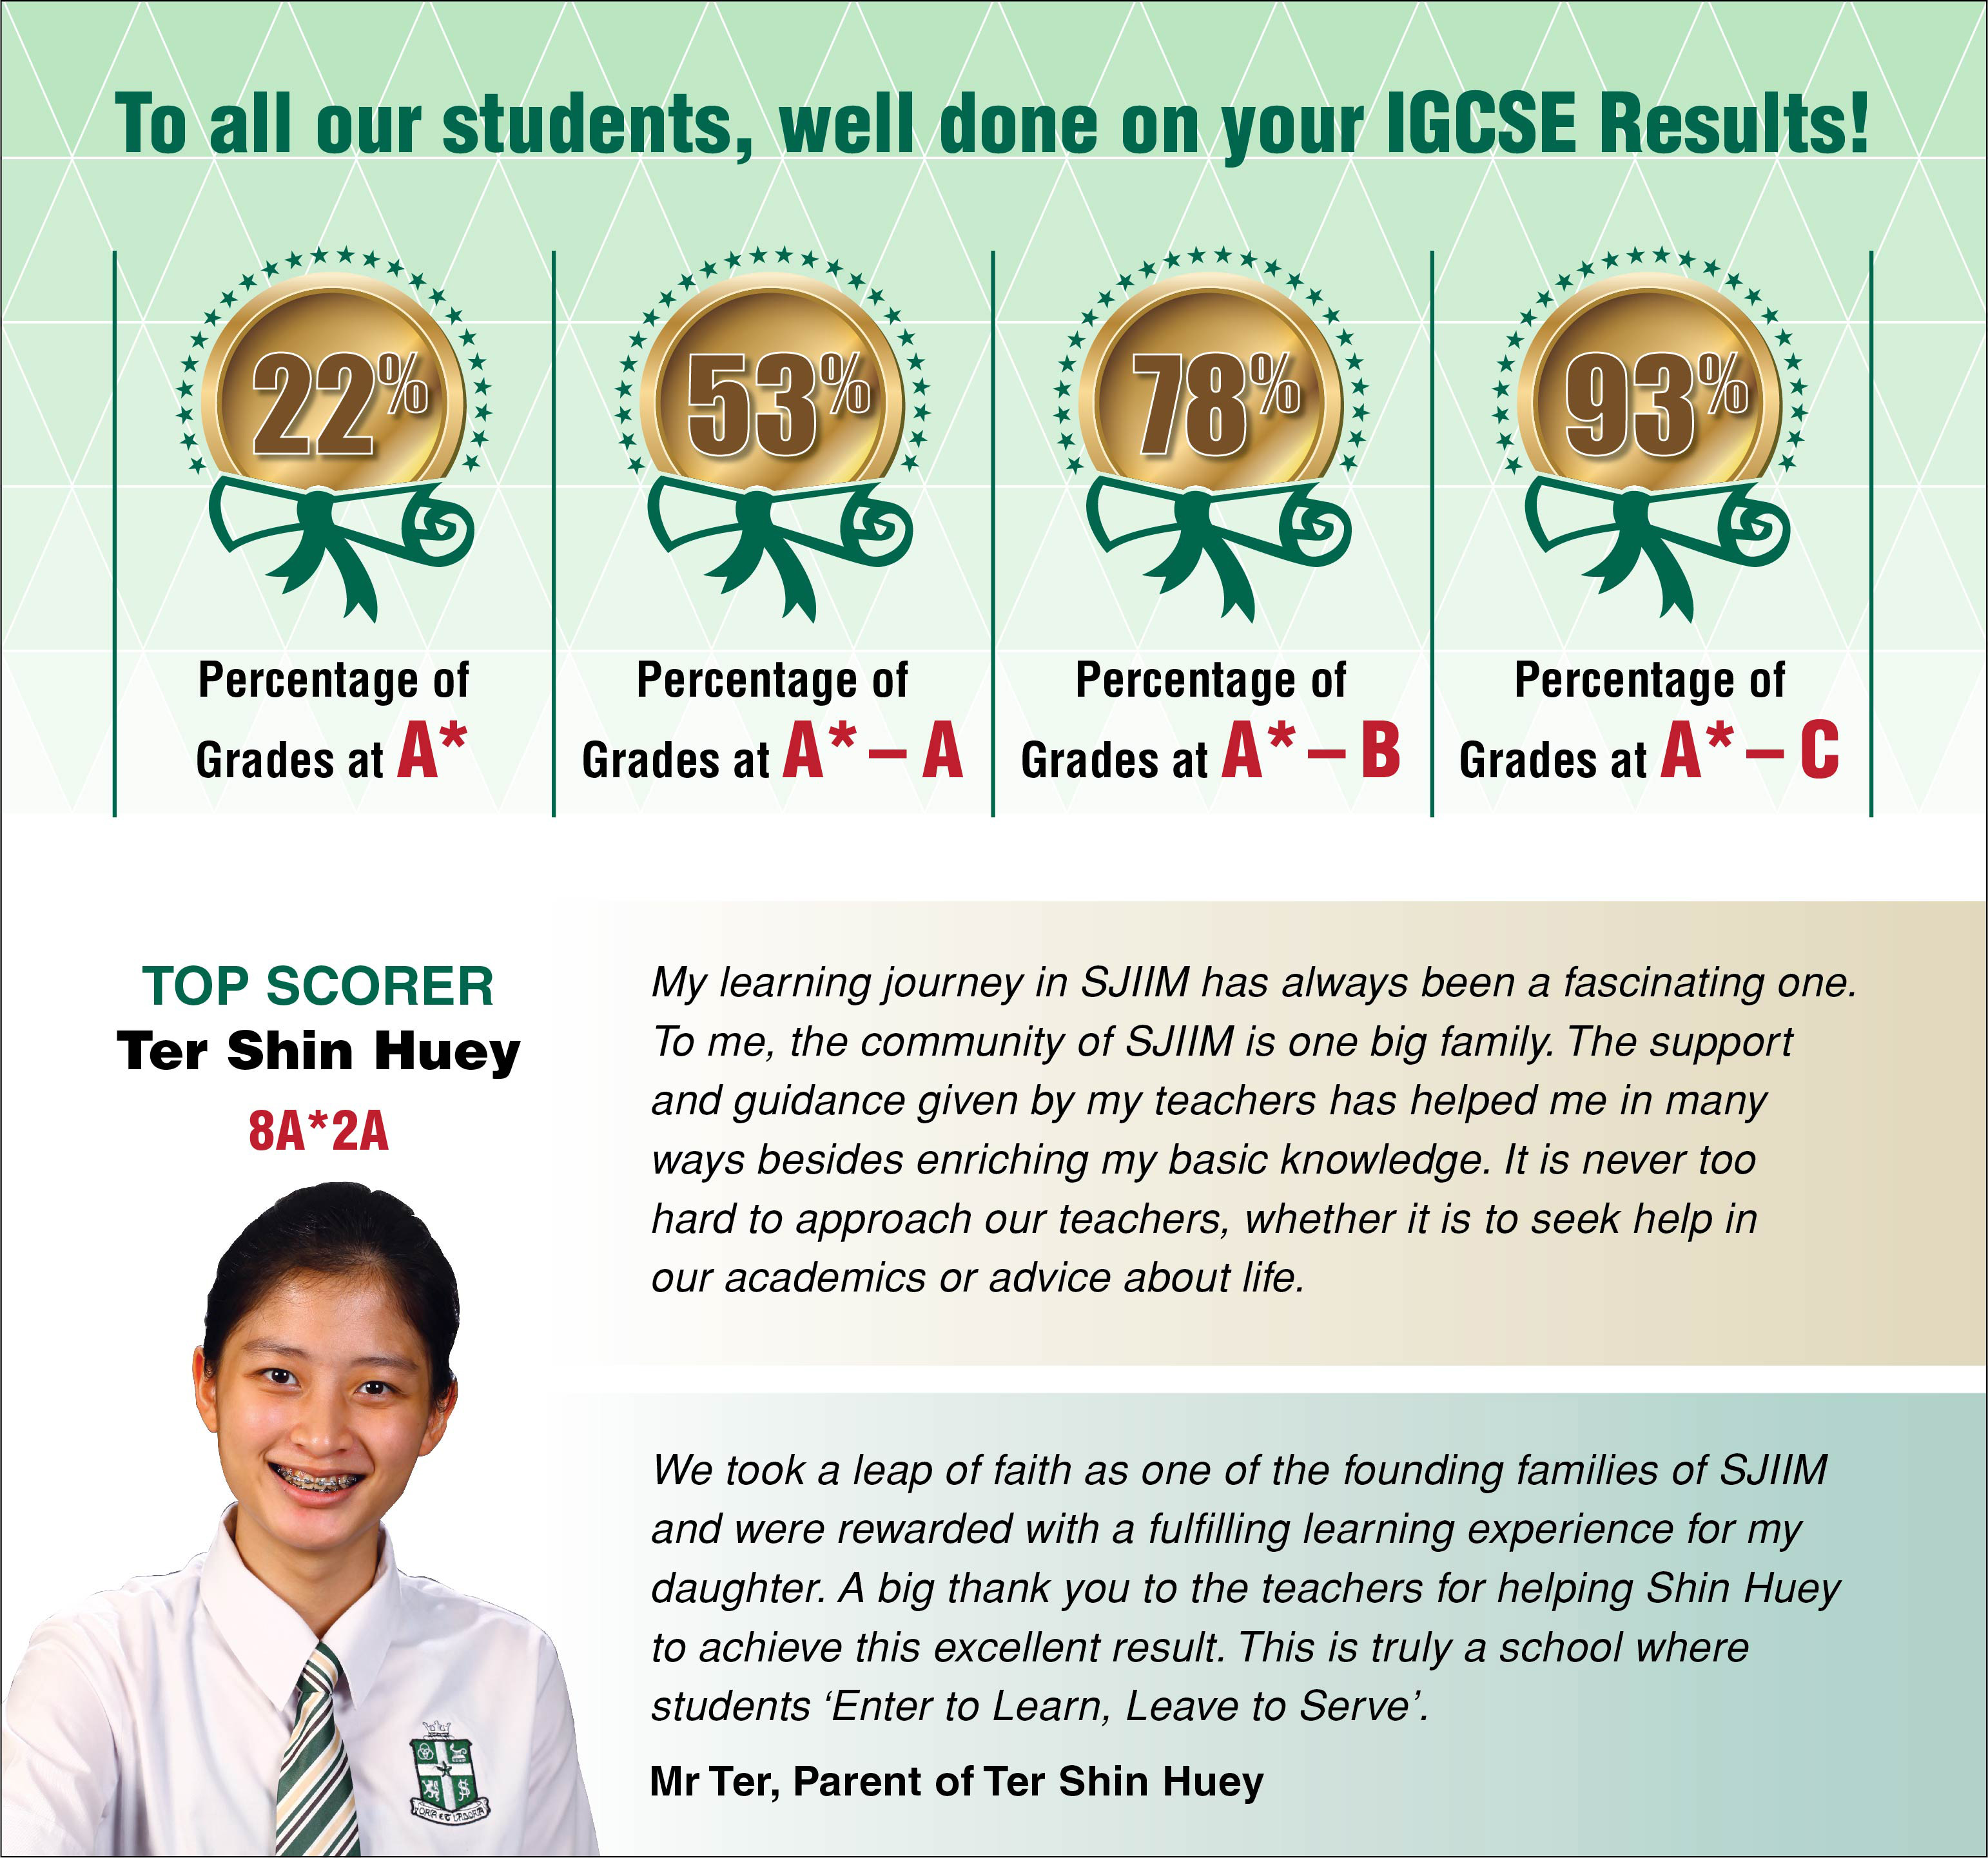 SJIIM STUDENTS SECURE EXCELLENT IGCSE RESULTS | ST Joseph's